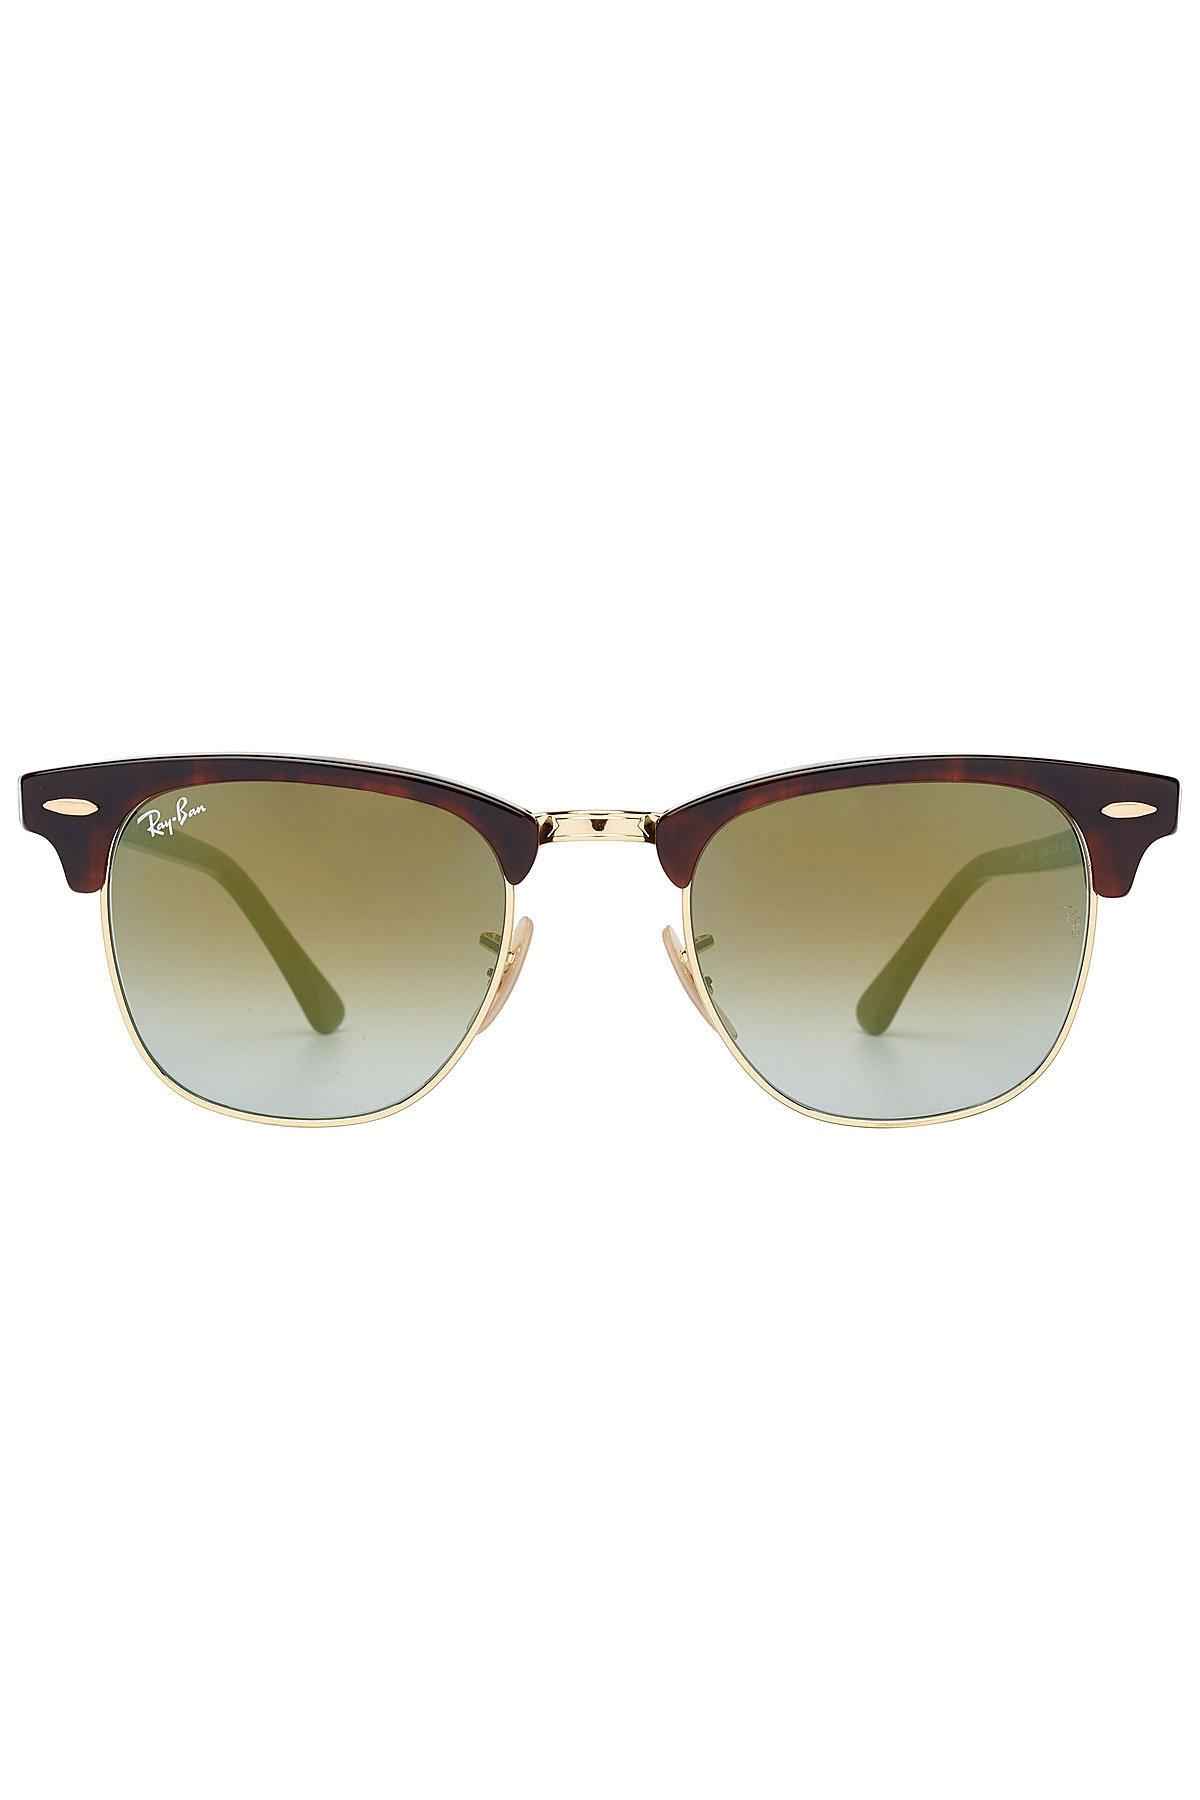 Ray Ban Rb3016 Clubmaster Sunglasses In Brown